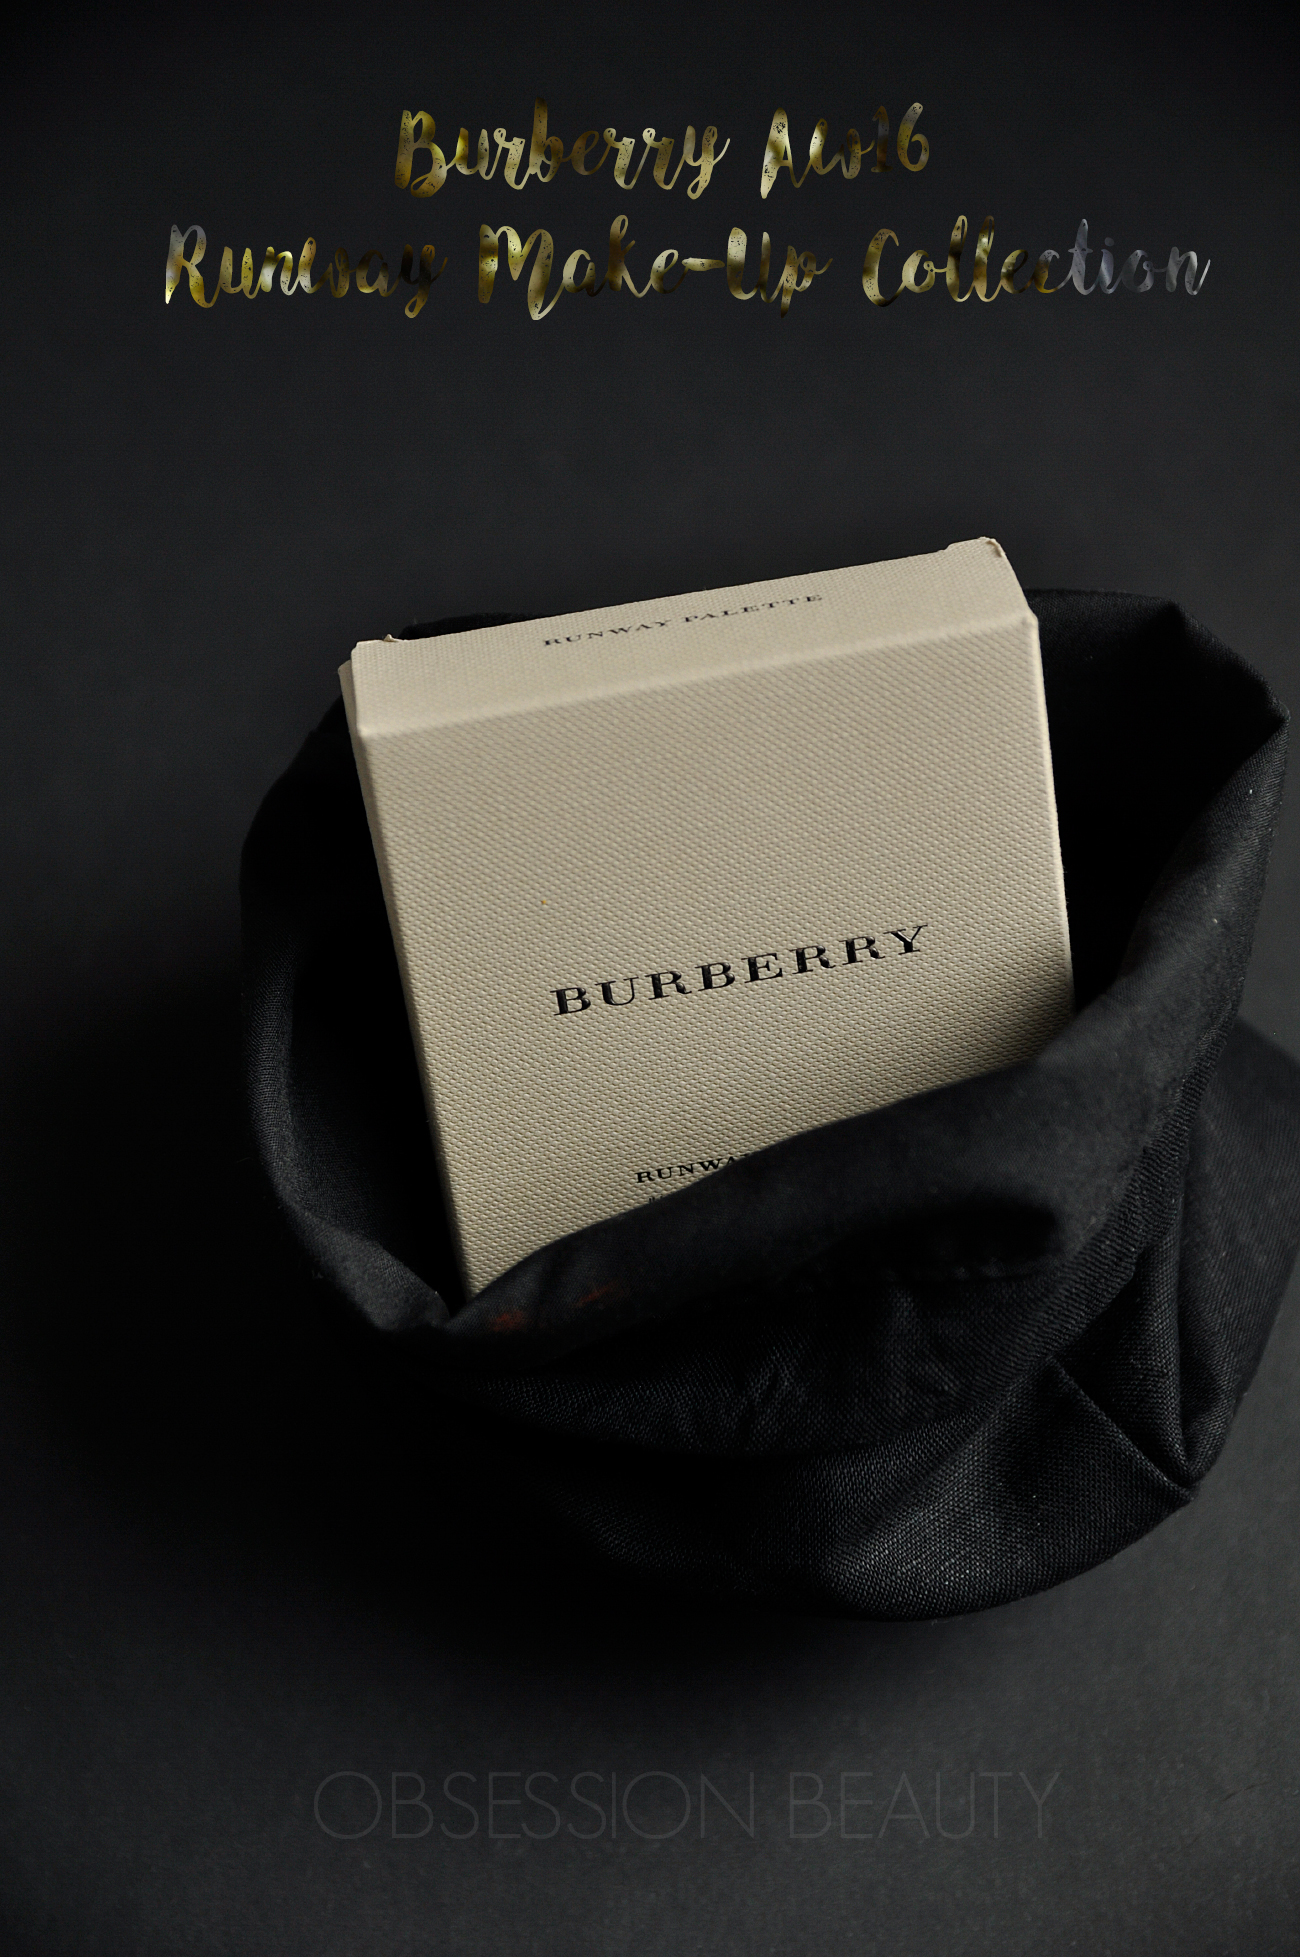 burberry-introduces